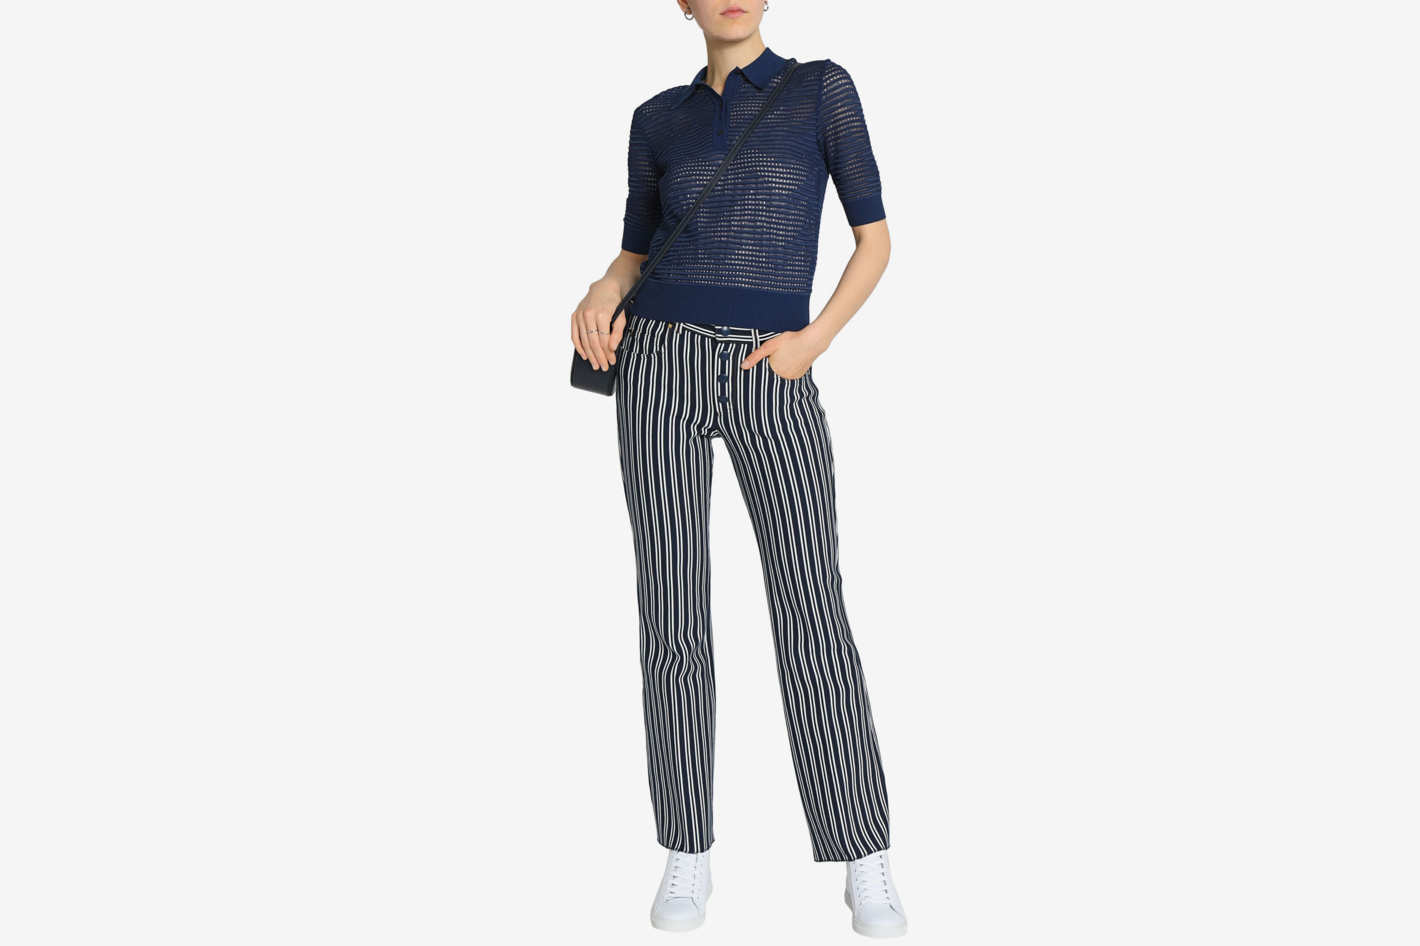 M Missoni Paneled Stretch-Knit Top